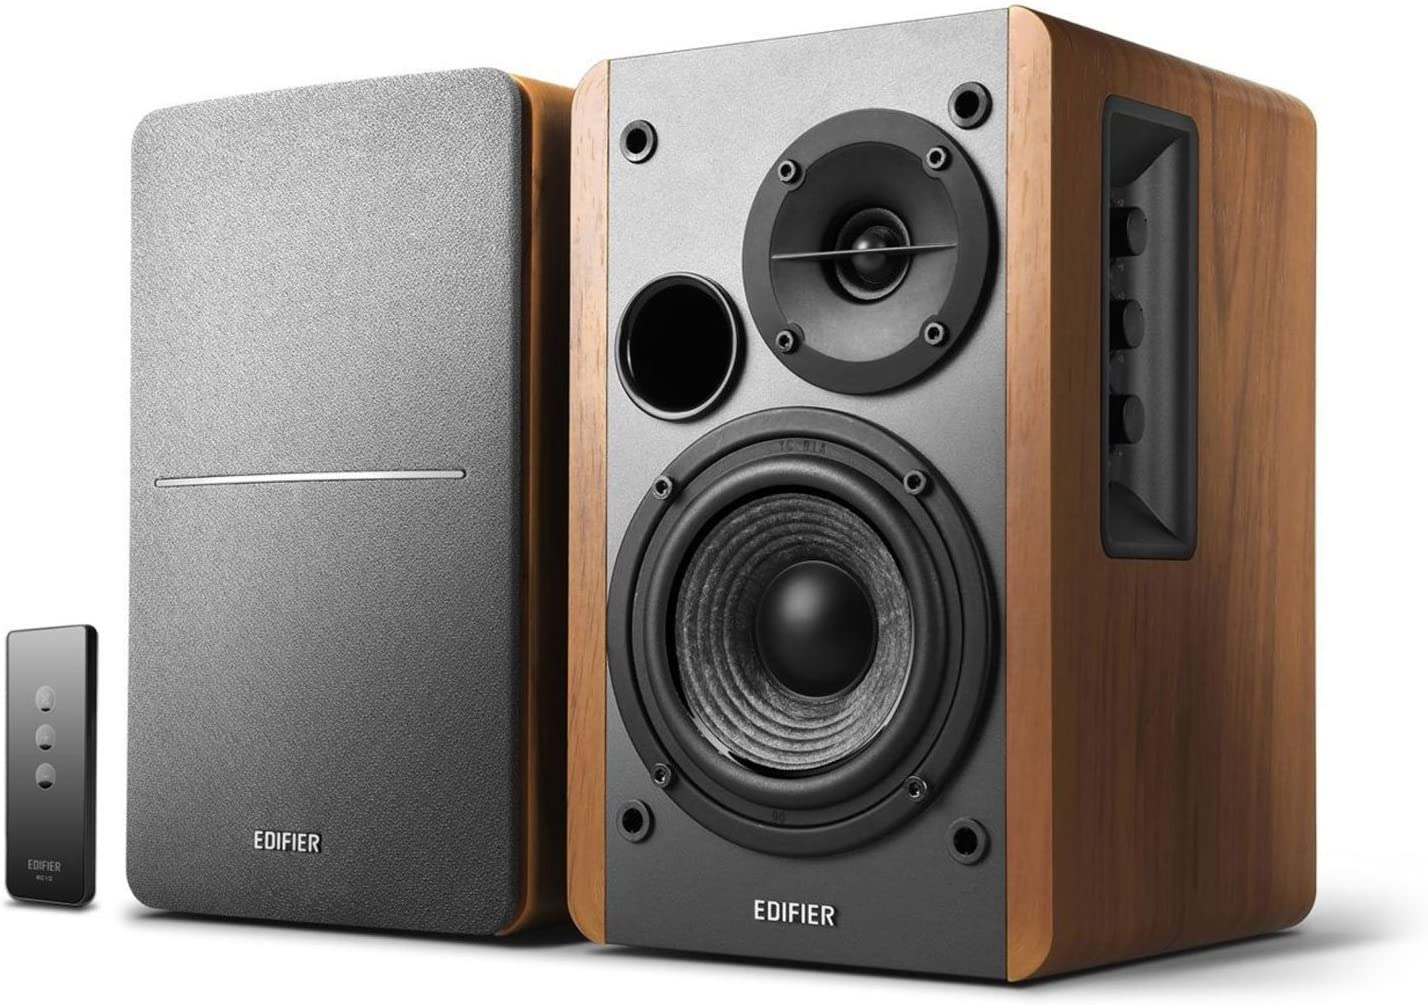 Edifier R1280T Powered Bookshelf Speakers - Best For High Quality At Low Price